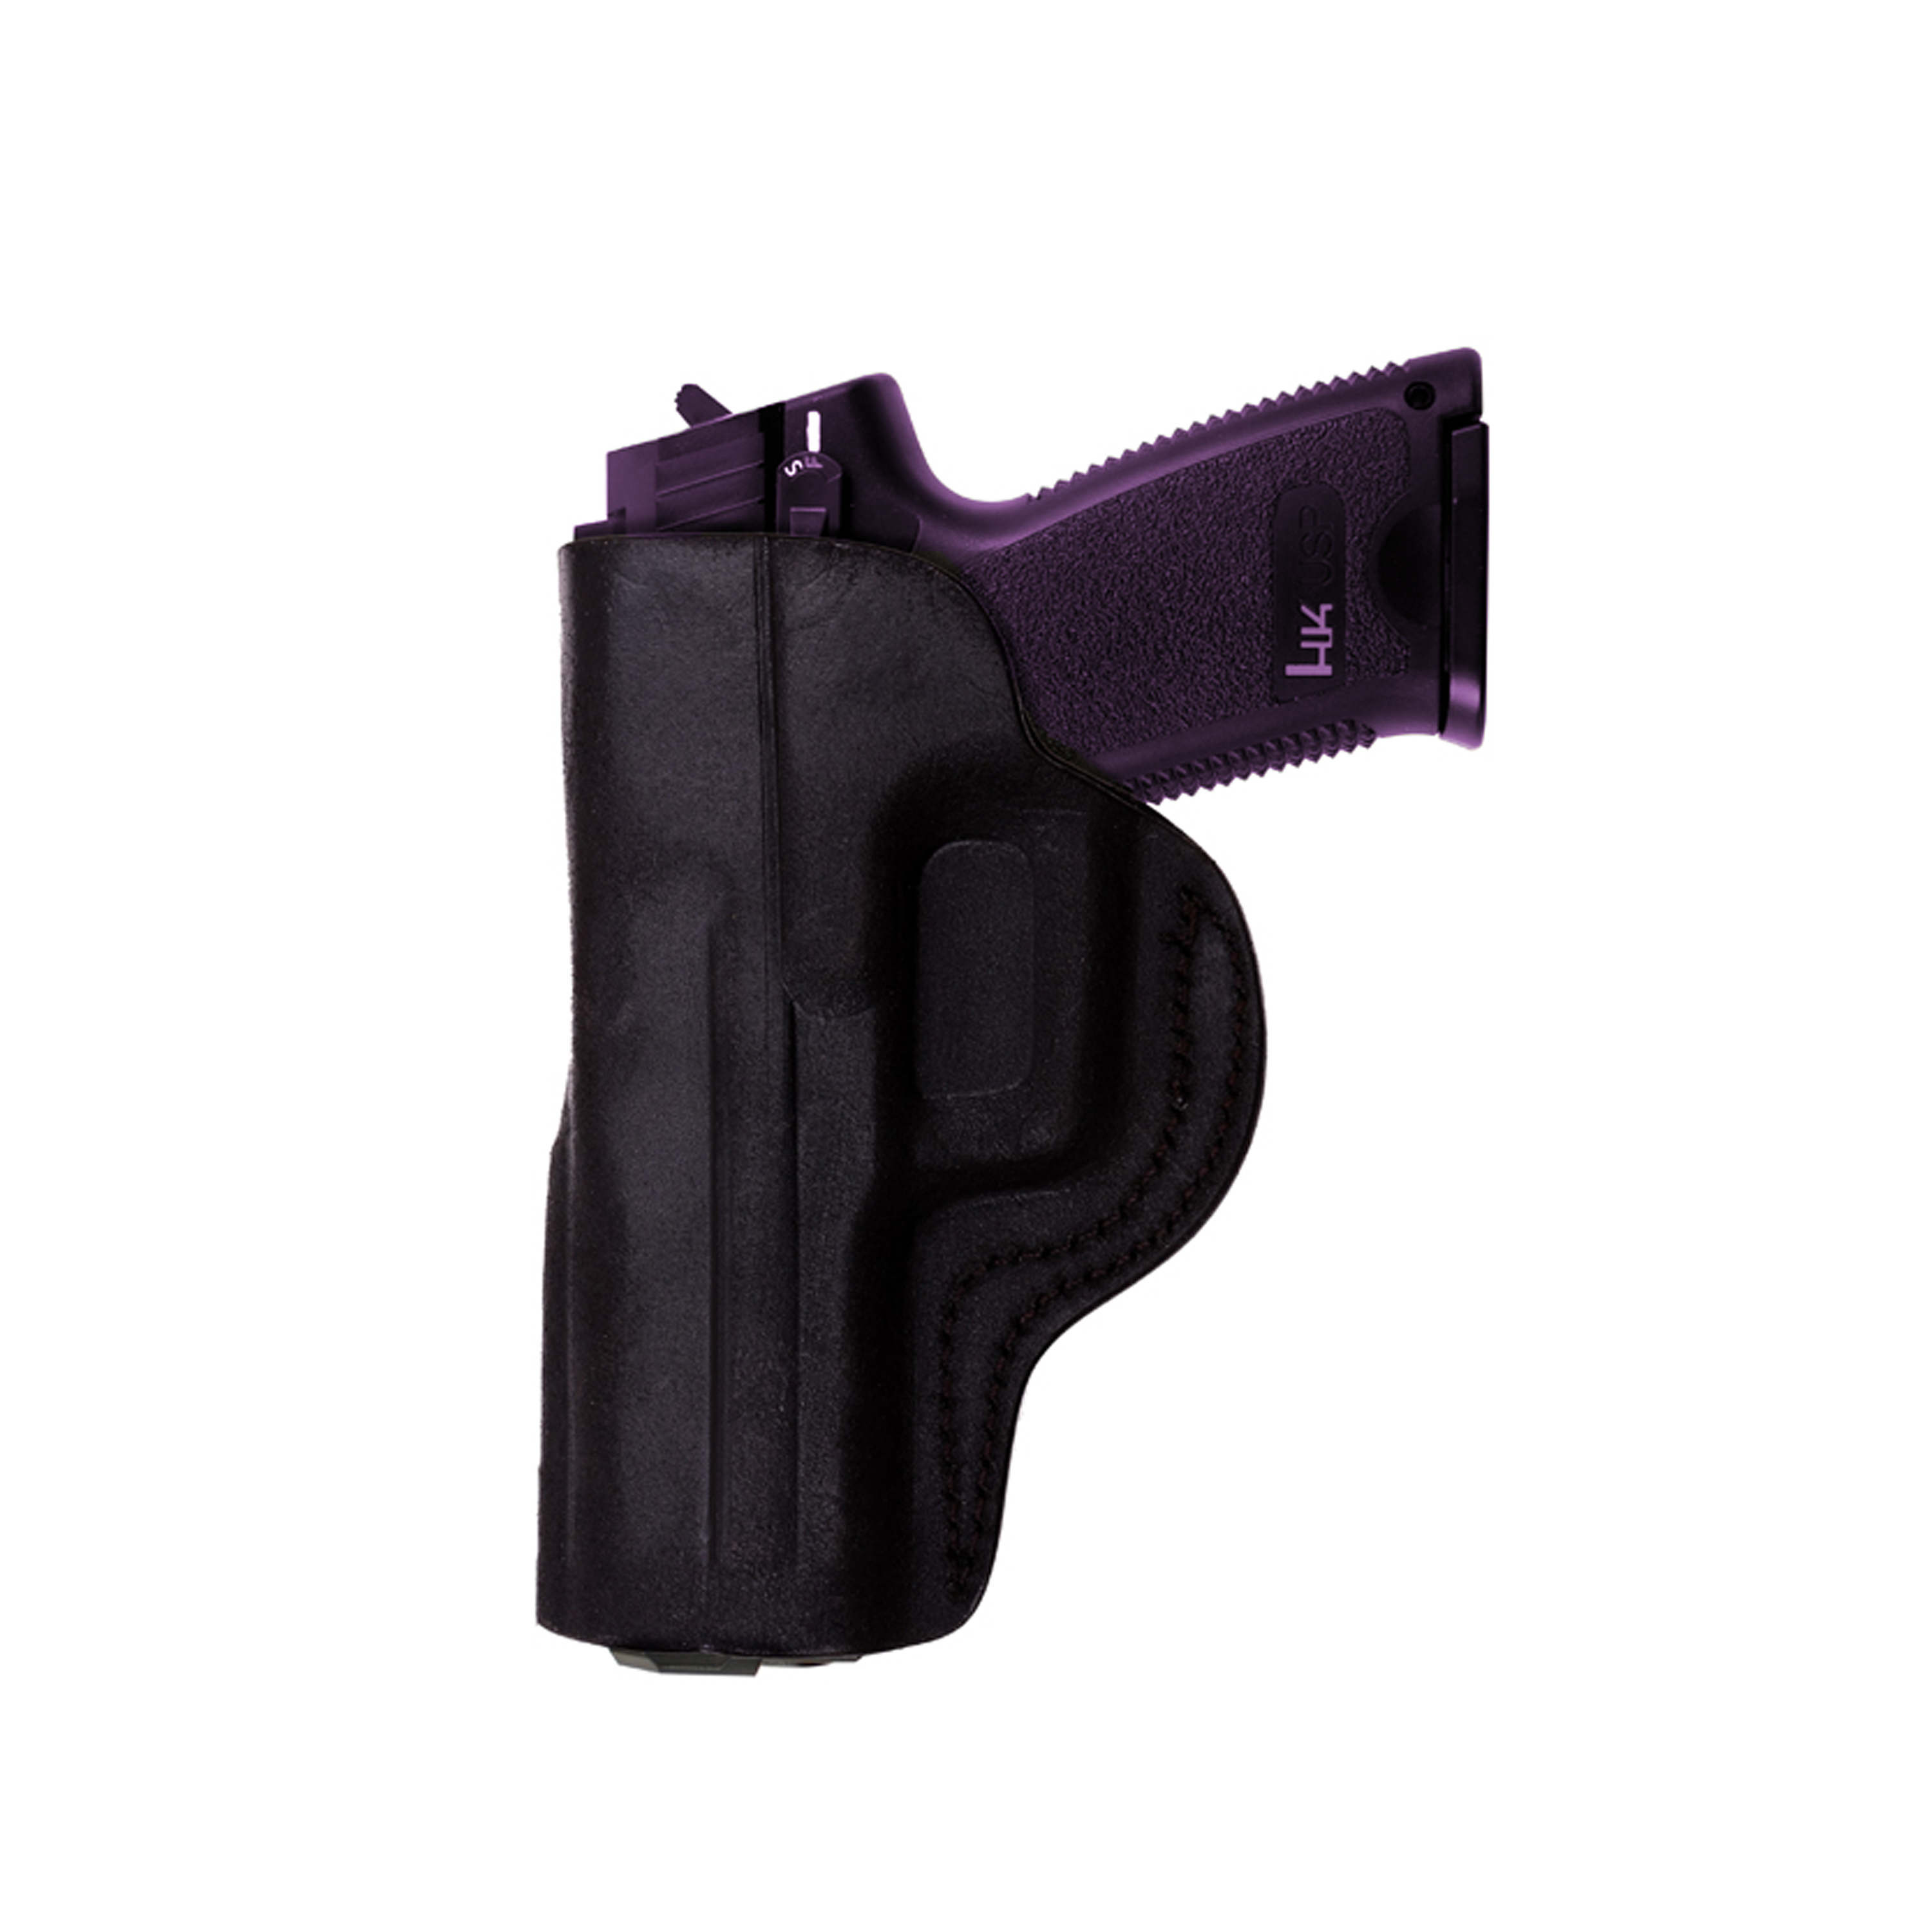 Tagua Springfield XD Open Top Inside-The-Pant Holster, Black, Right-Handed